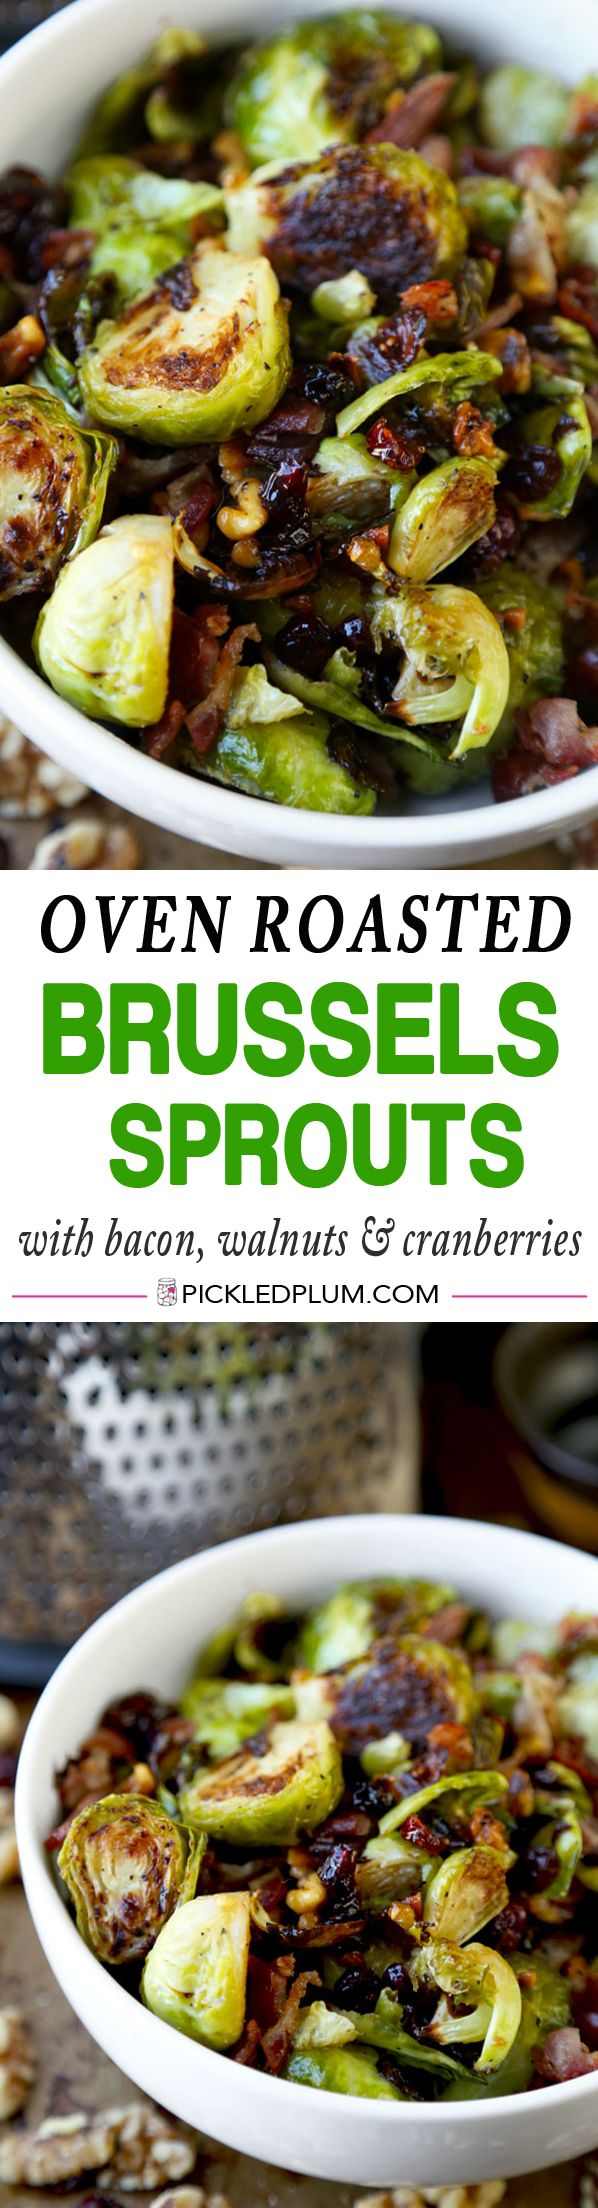 Oven roasted Brussels sprouts with bacon, walnuts and dried cranberries - healthy, salty, sweet, savory and smoky. Perfect for Thanksgiving dinner! http://www.pickledplum.com/oven-roasted-brussels-sprouts-with-bacon-recipe/